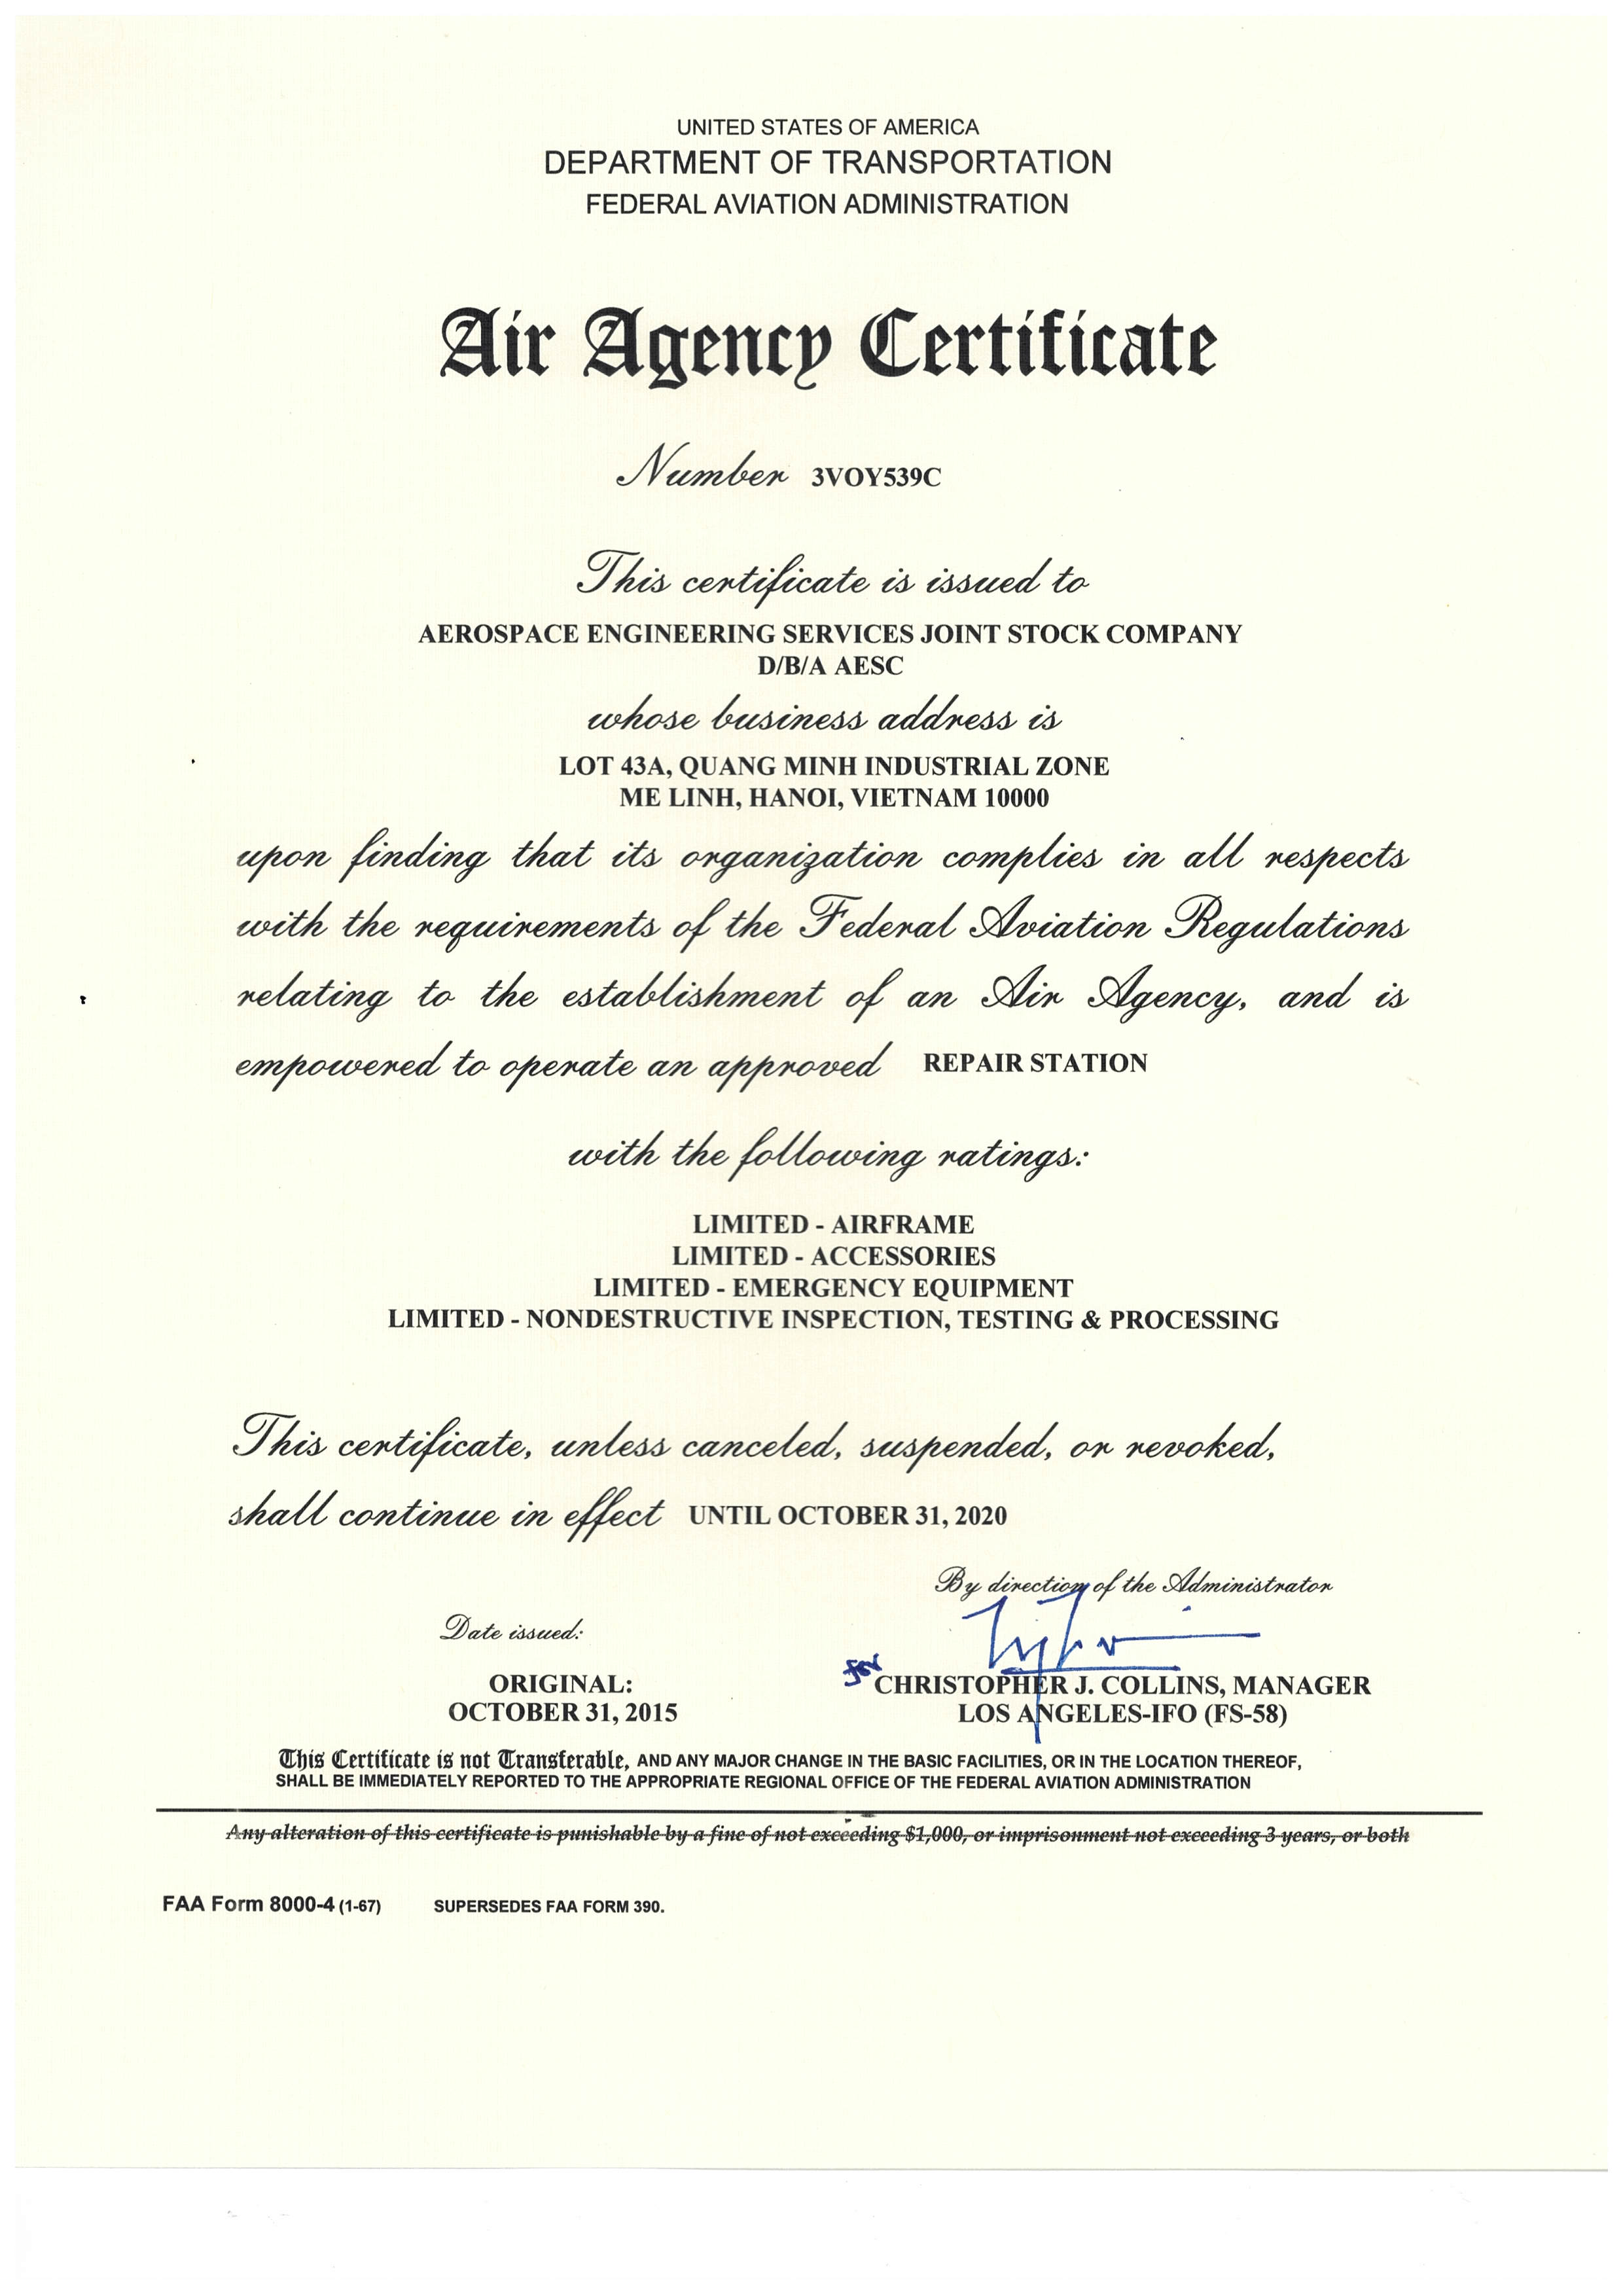 FAA Air Agency Certificate 3VOY539C Renewal